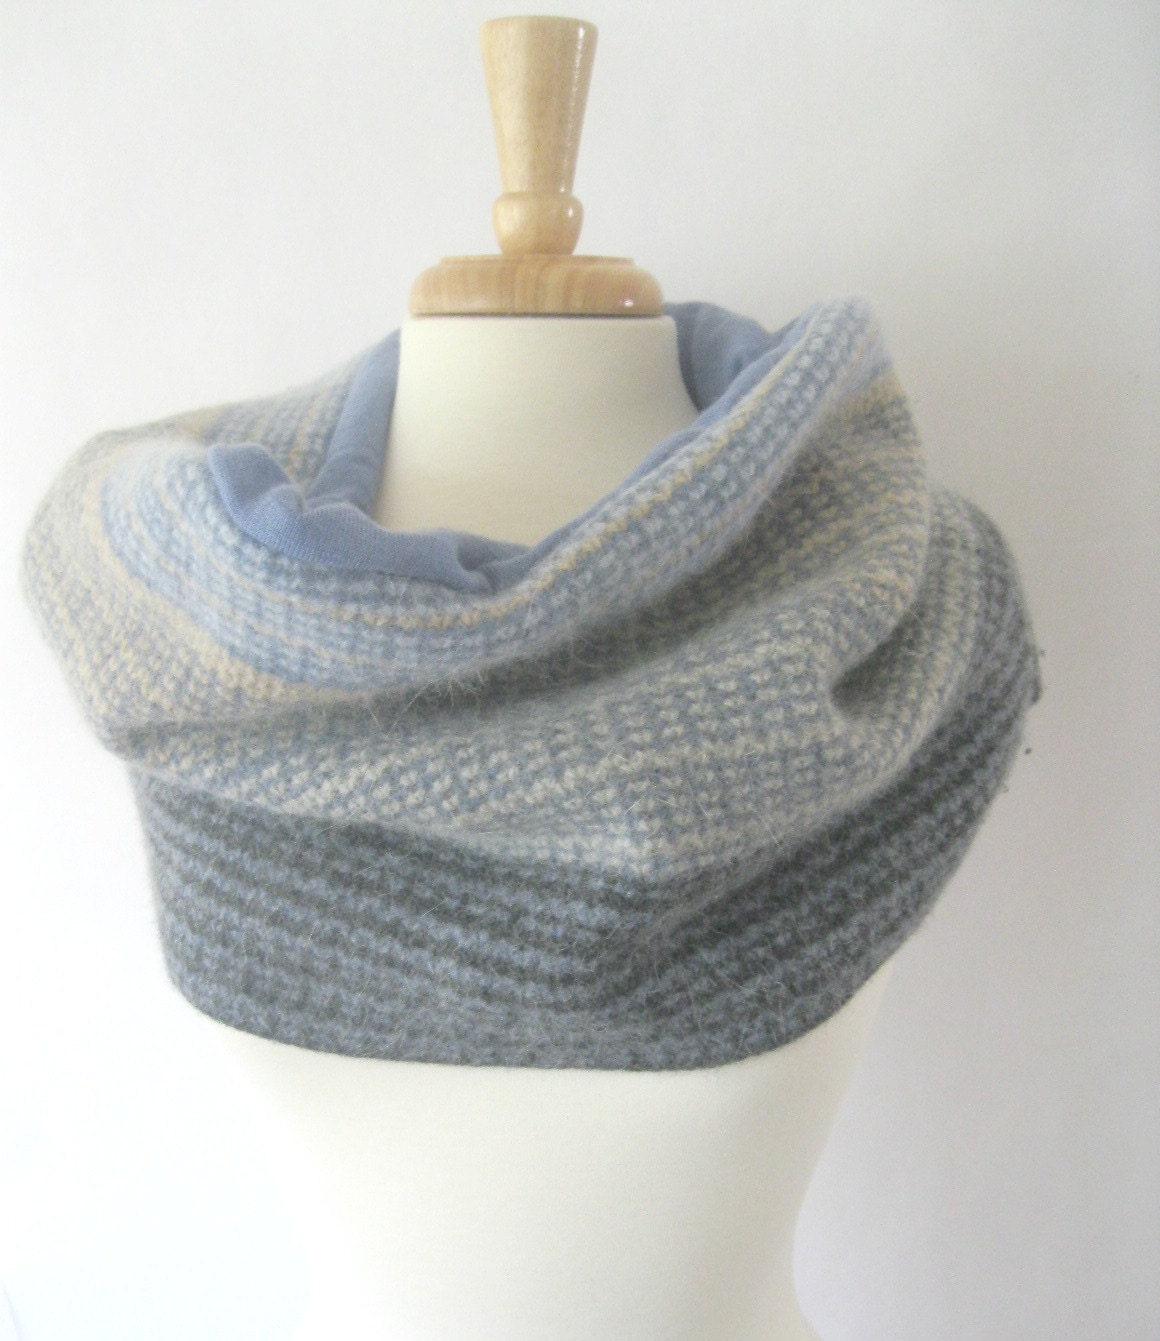 Wool Snood Infinity Scarf Reversible Cowl - Blue Cream and Gray Texture : Upcycled Recycled Repurposed Fall Fashion - SewEcological